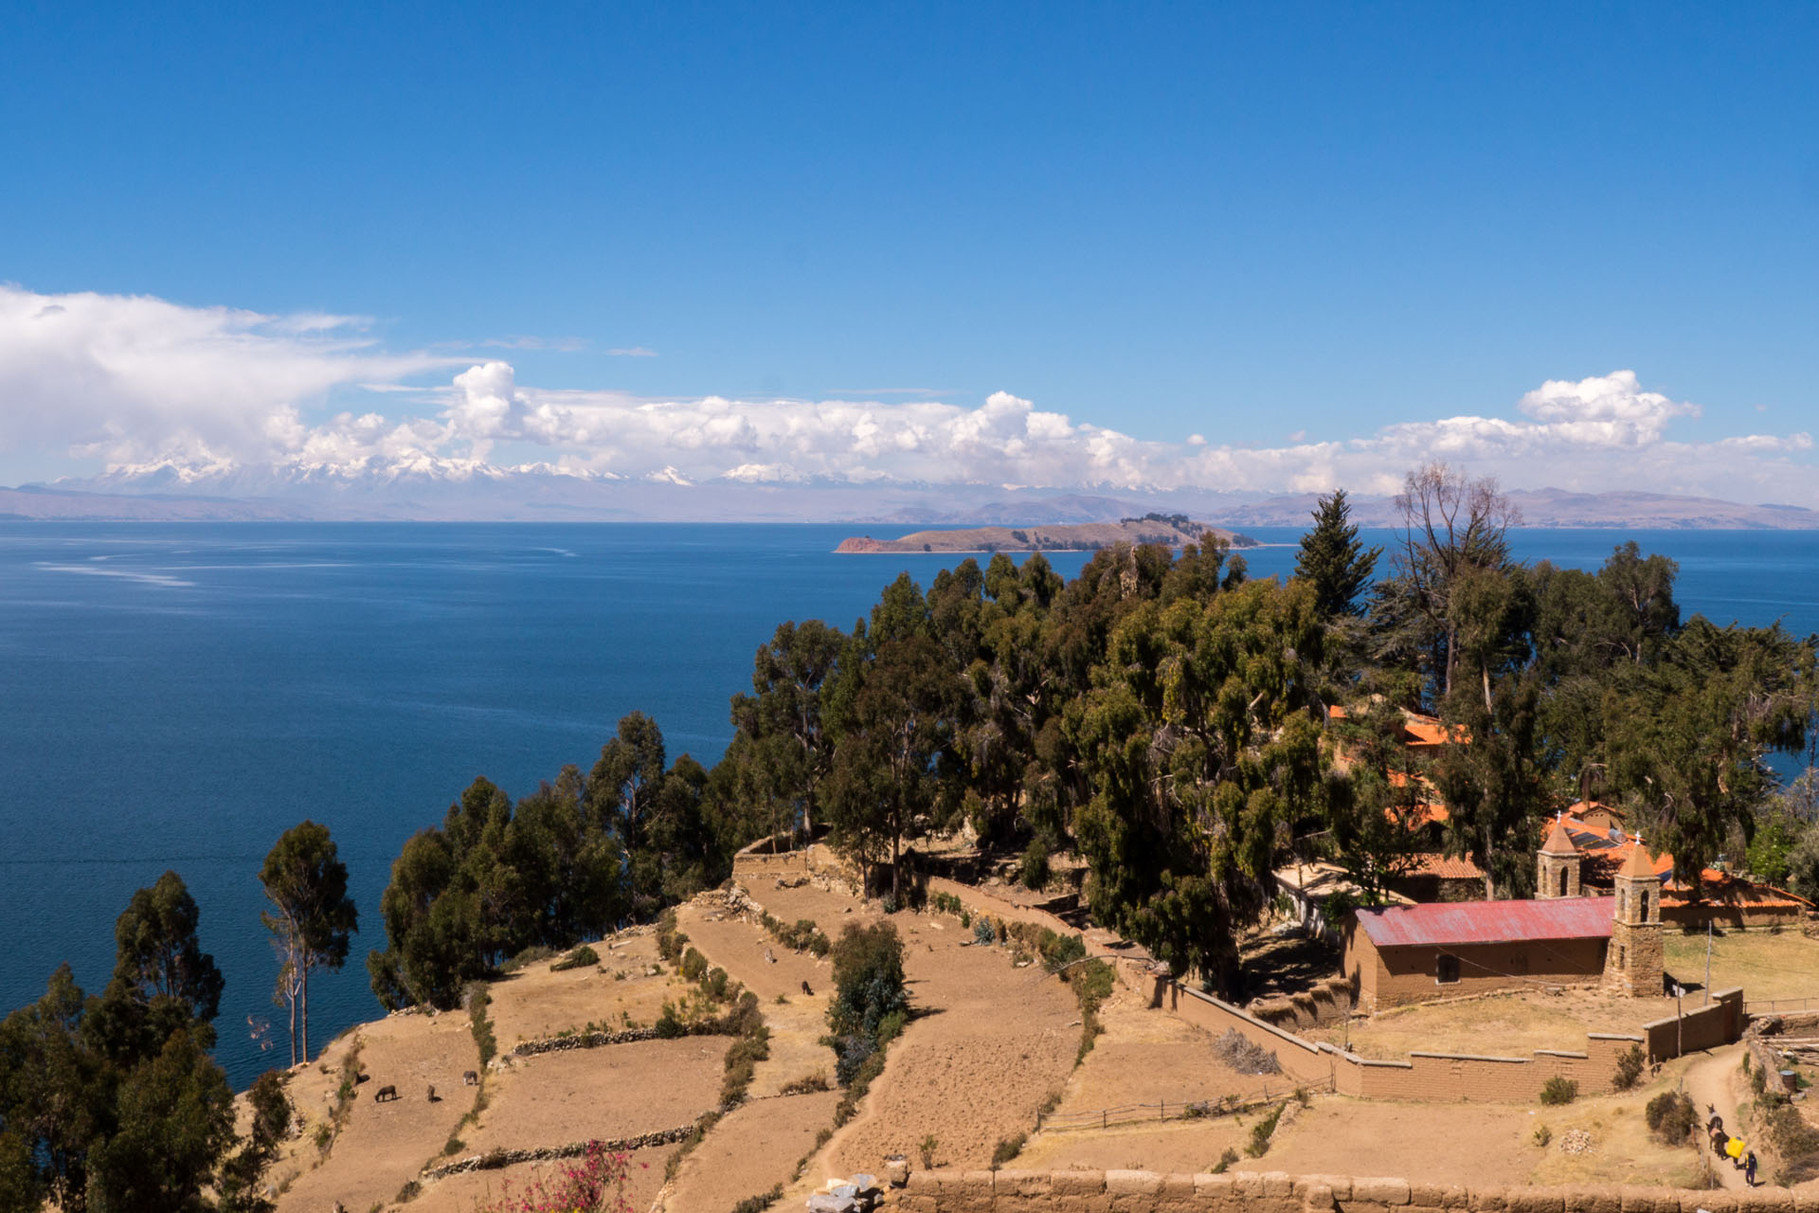 Isla del sol (Sun island), church of Yumani, Lake Titicaca (Andes in the background)